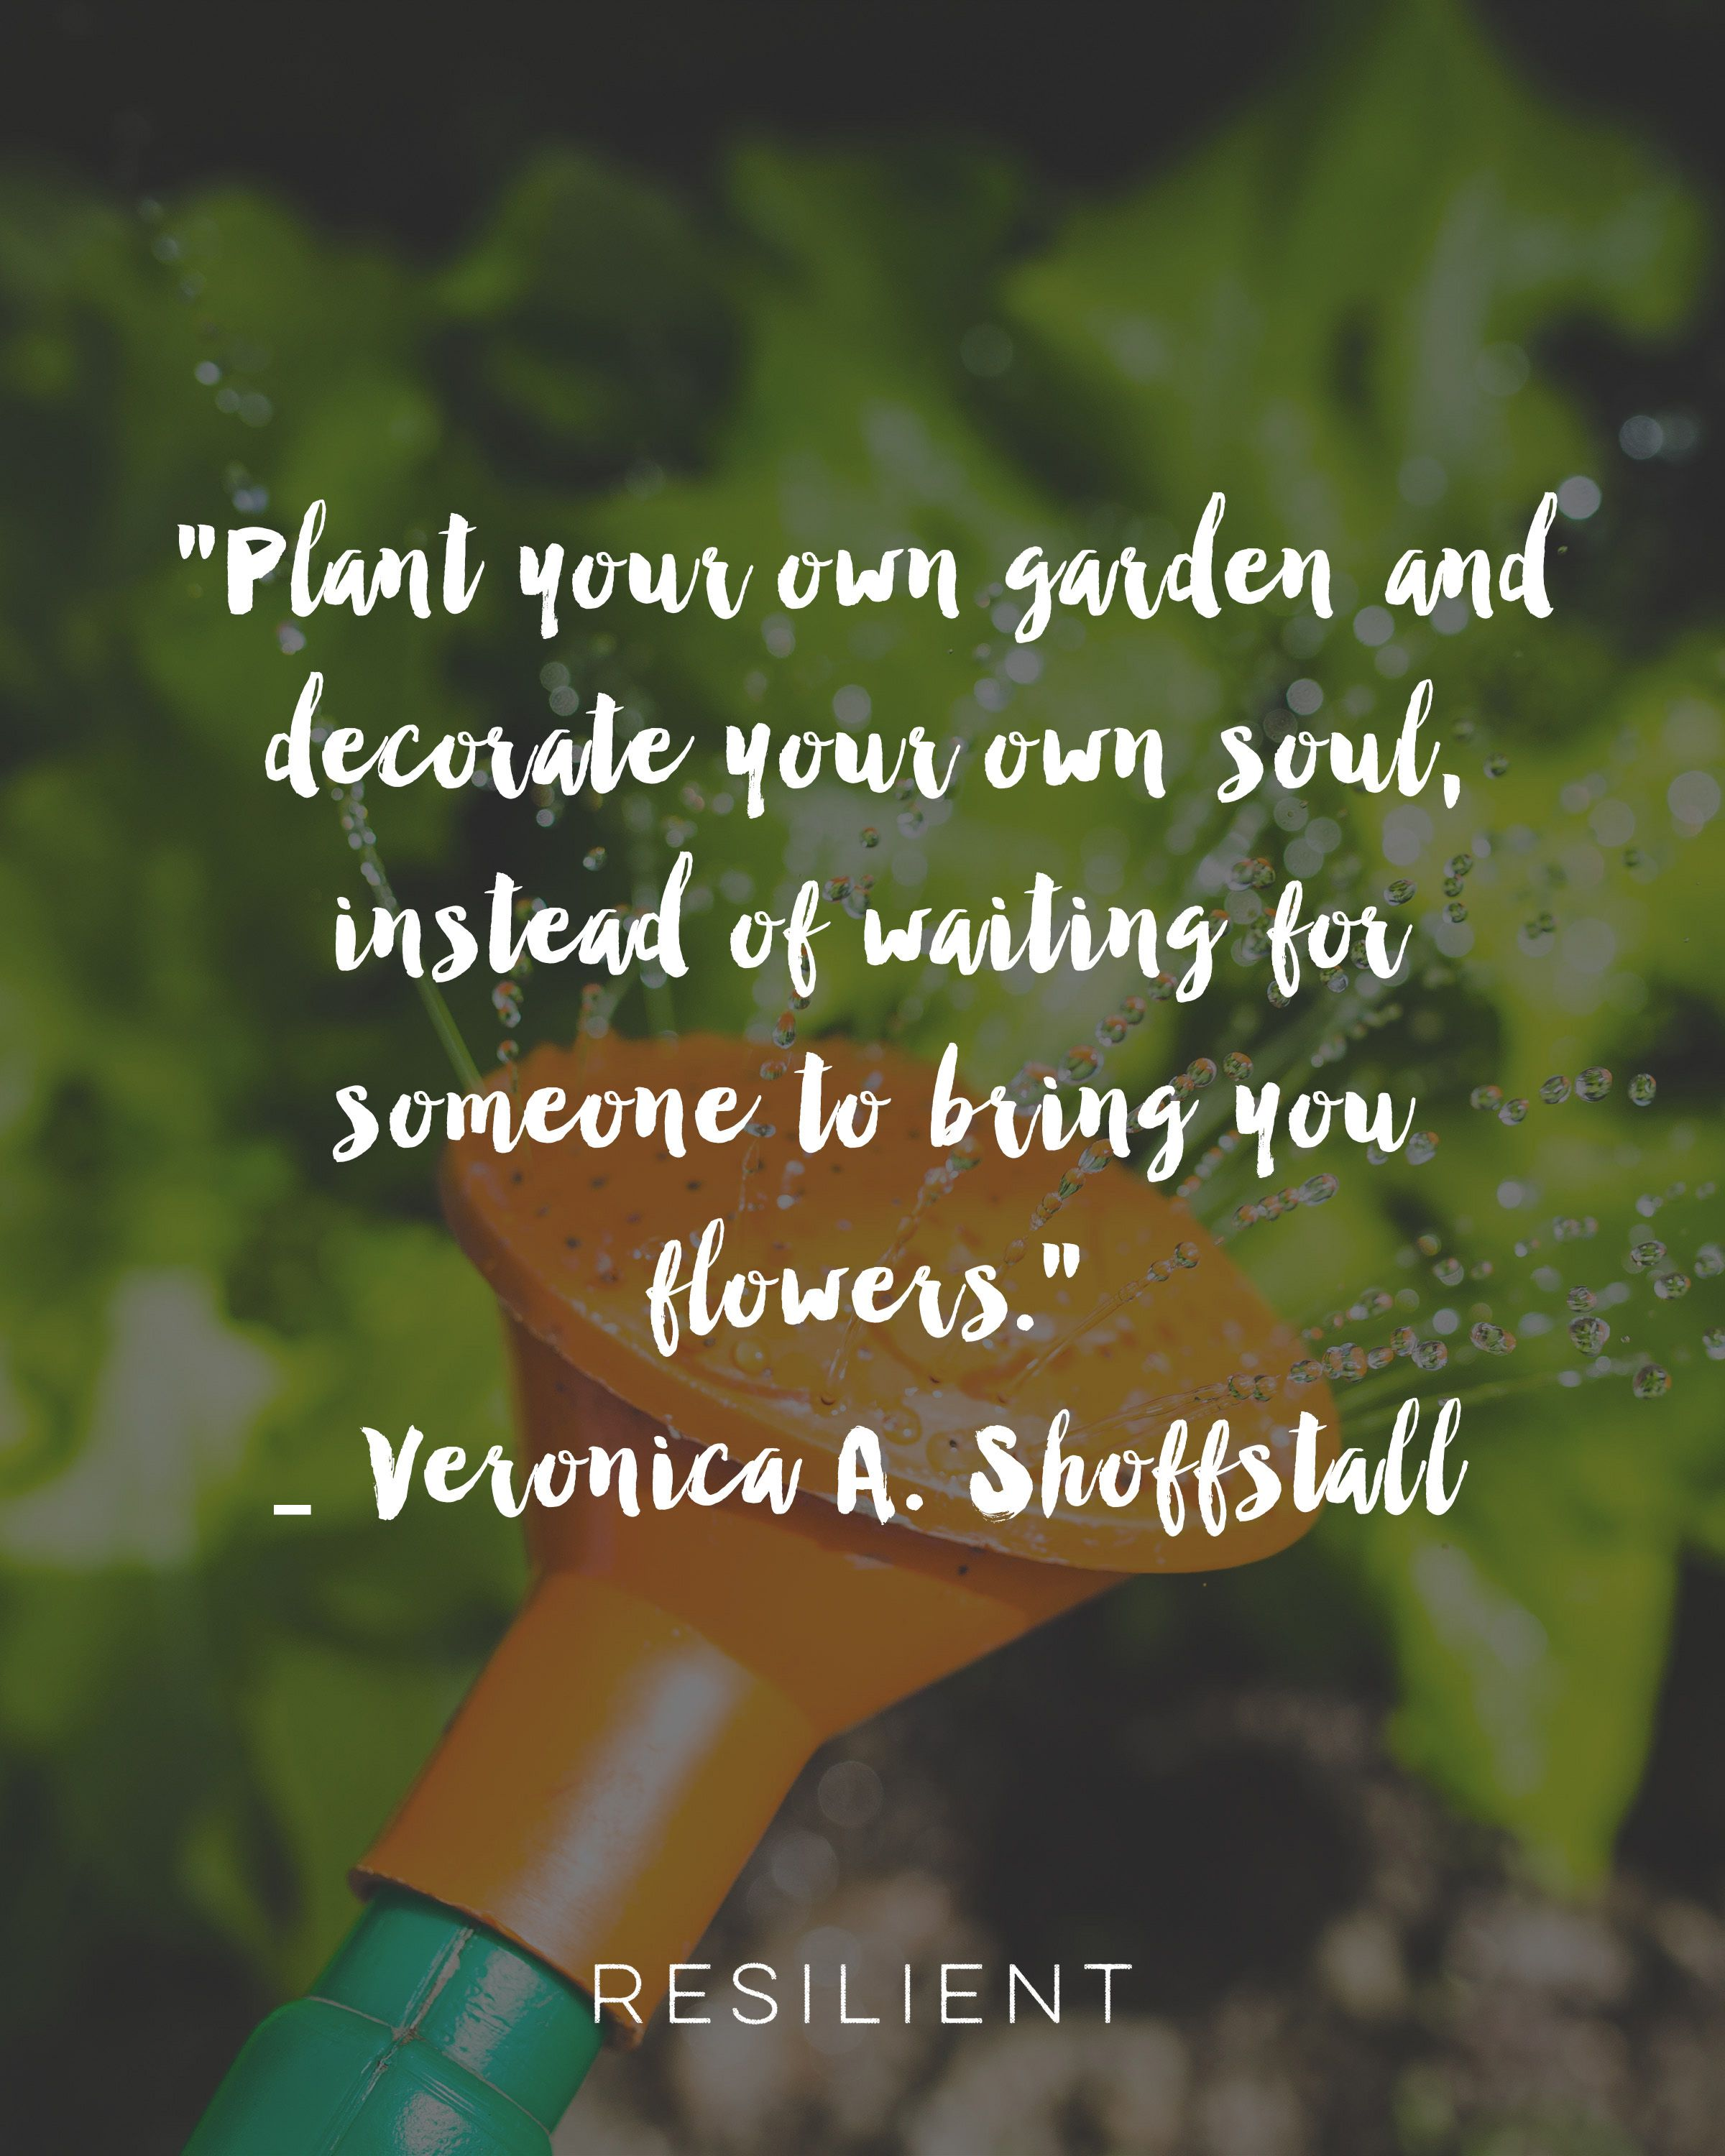 50 Beautiful Quotes About Self Love | Veronica, Plants and Inspirational